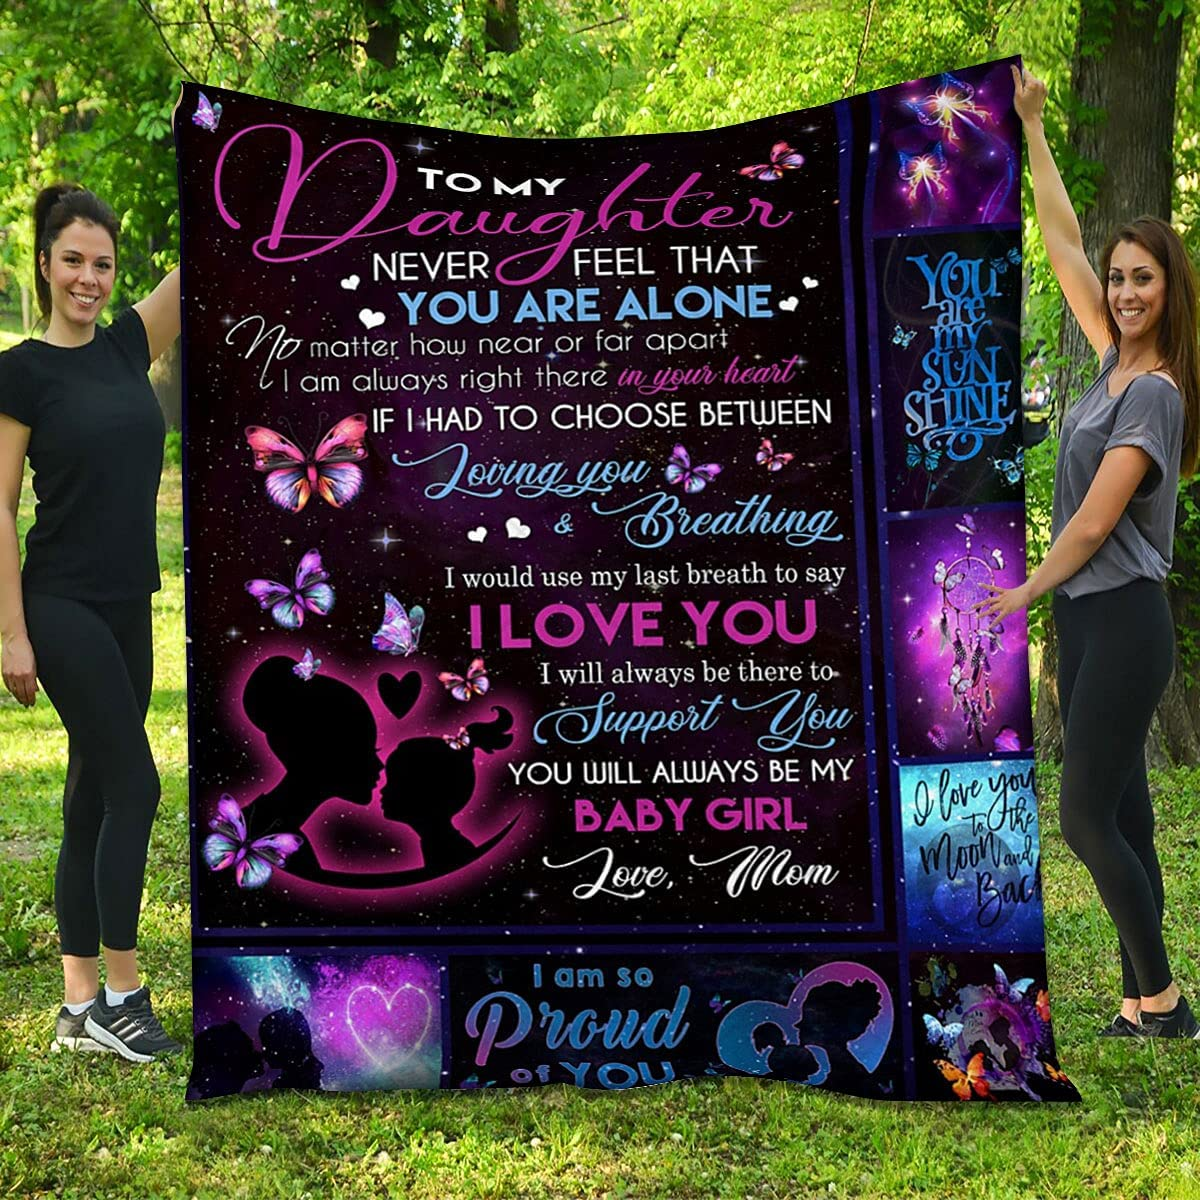 Daughter Quilt from Mom Free shipping Atlanta Mall anywhere in the nation - Girl Butterfly and Love You I